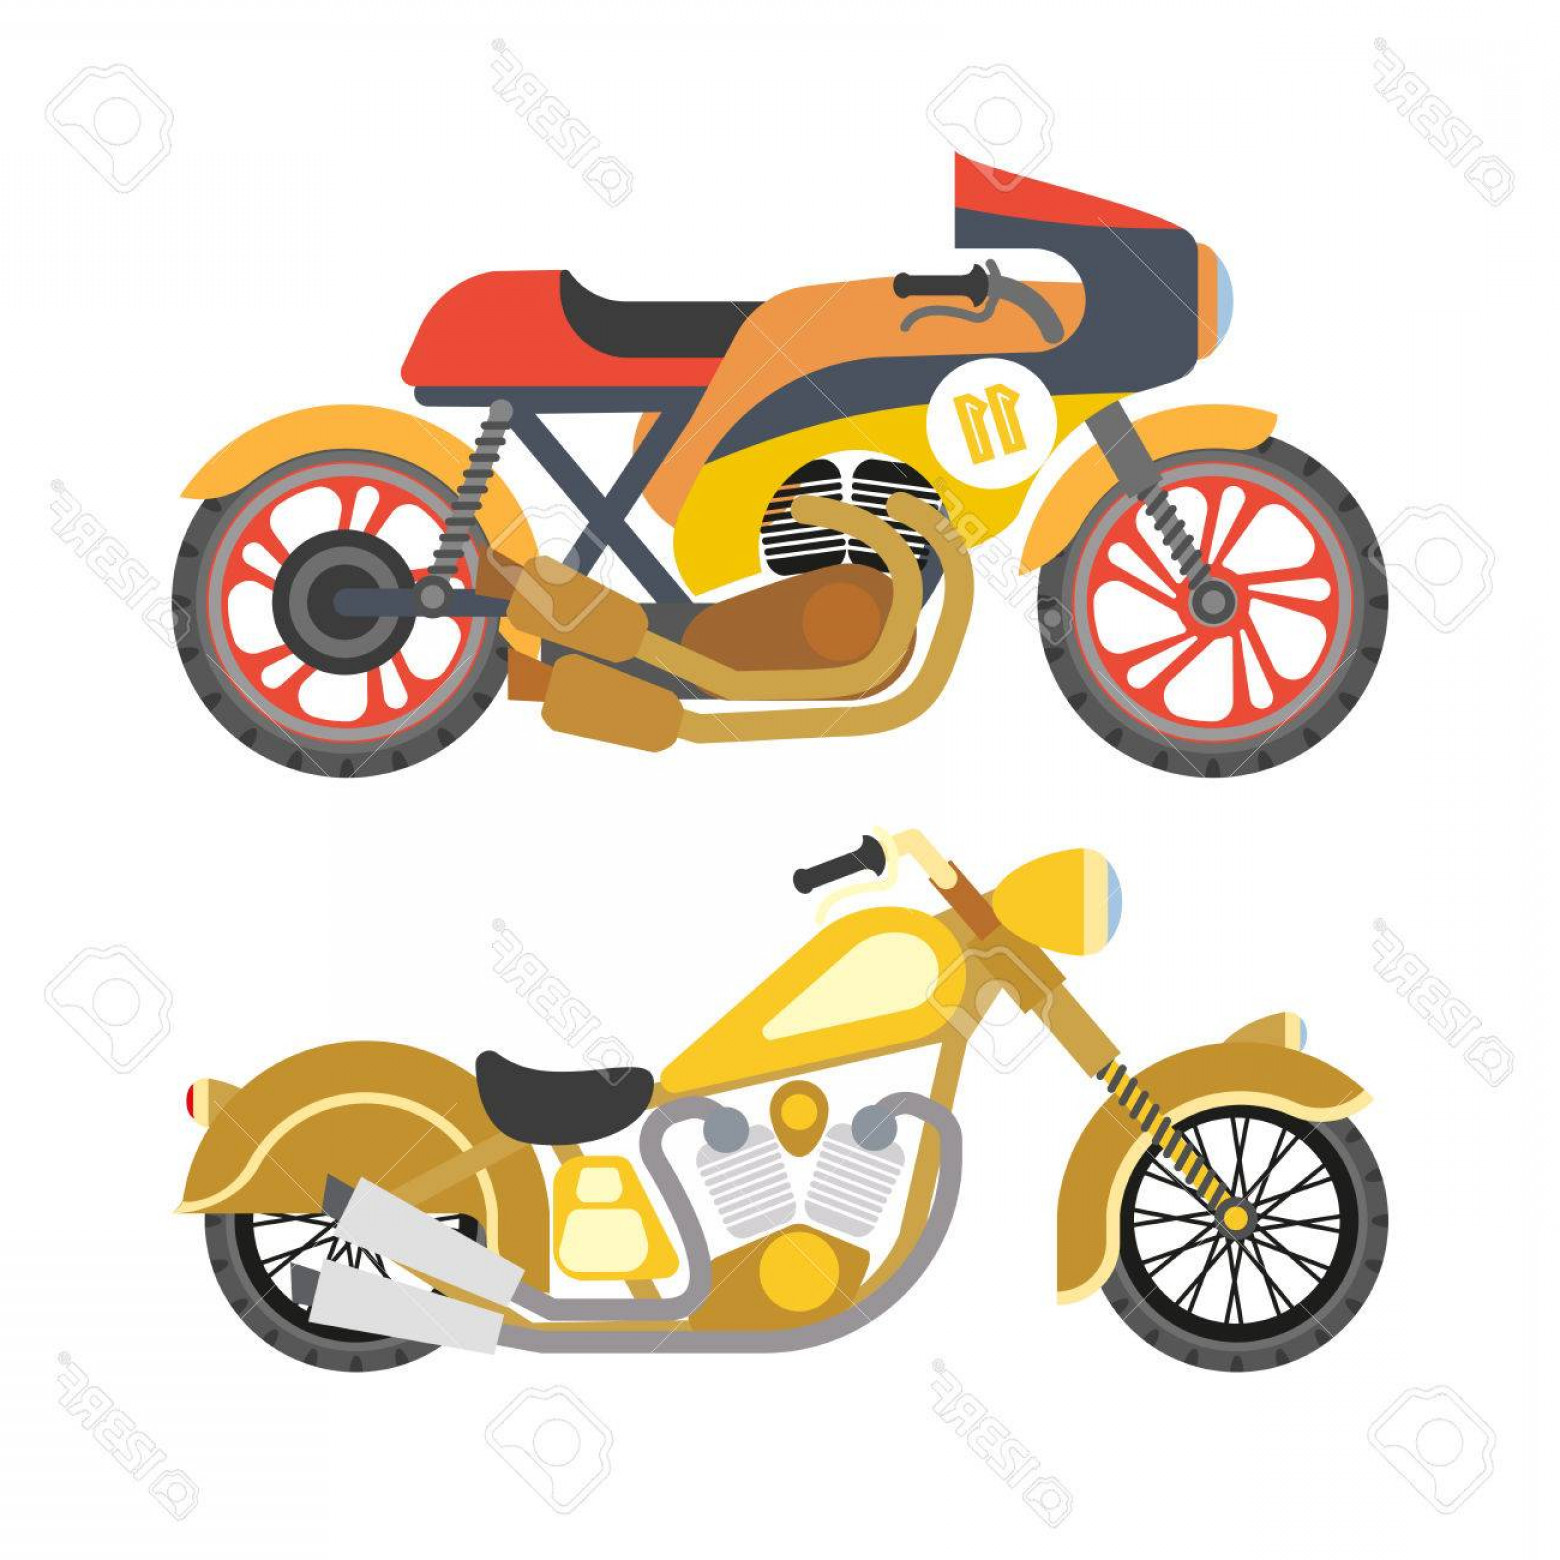 Flat Vector Motorcycle: Photostock Vector Motorcycle Motorbike Flat Vector Icons Set Speed Motorcycle Collection Vector Illustration Isolated